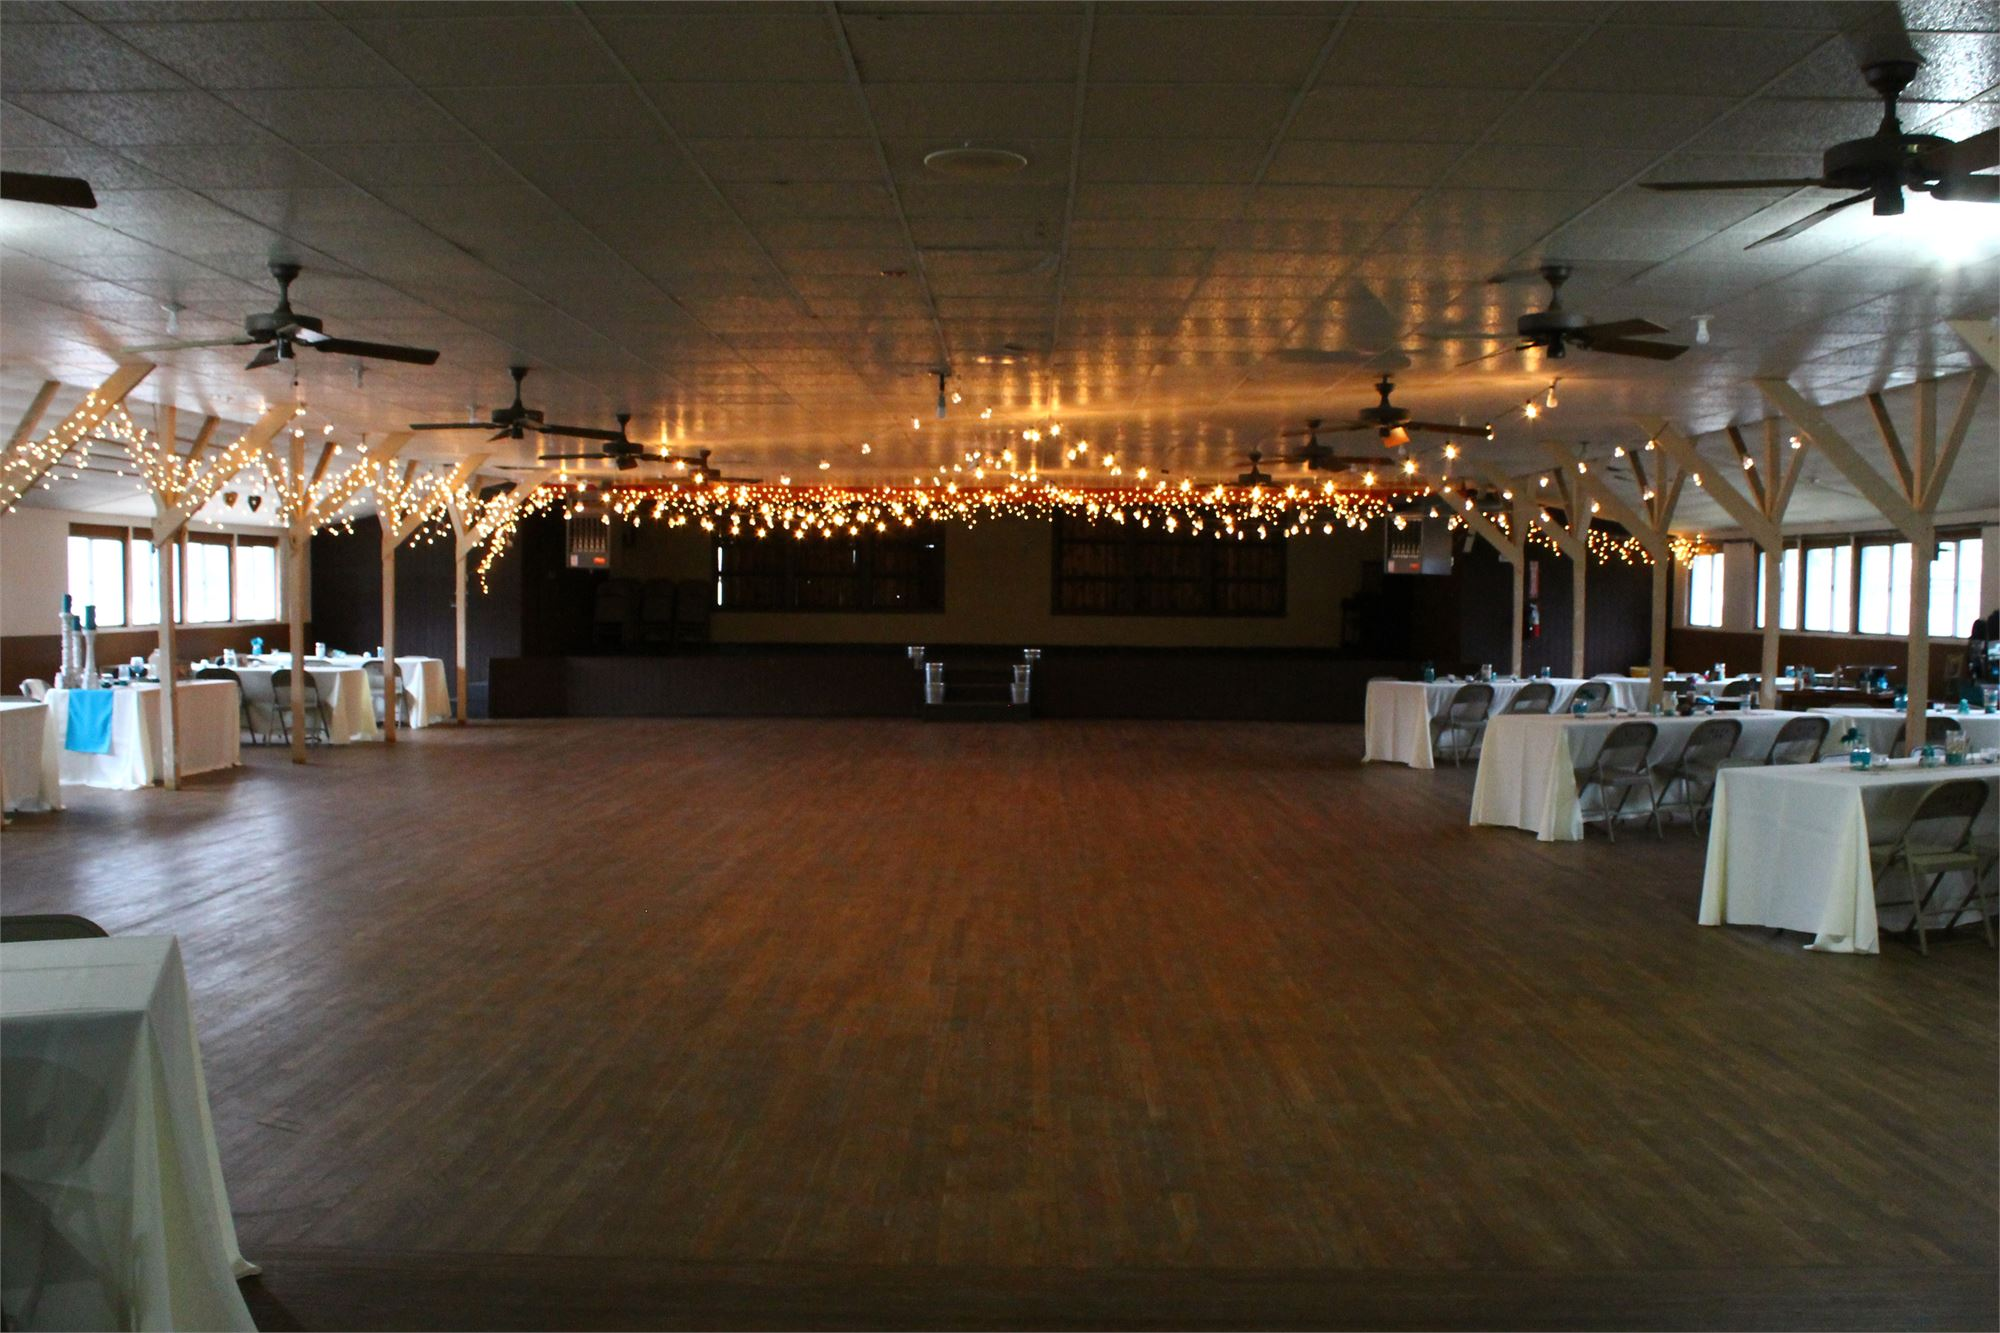 Old Dance Hall